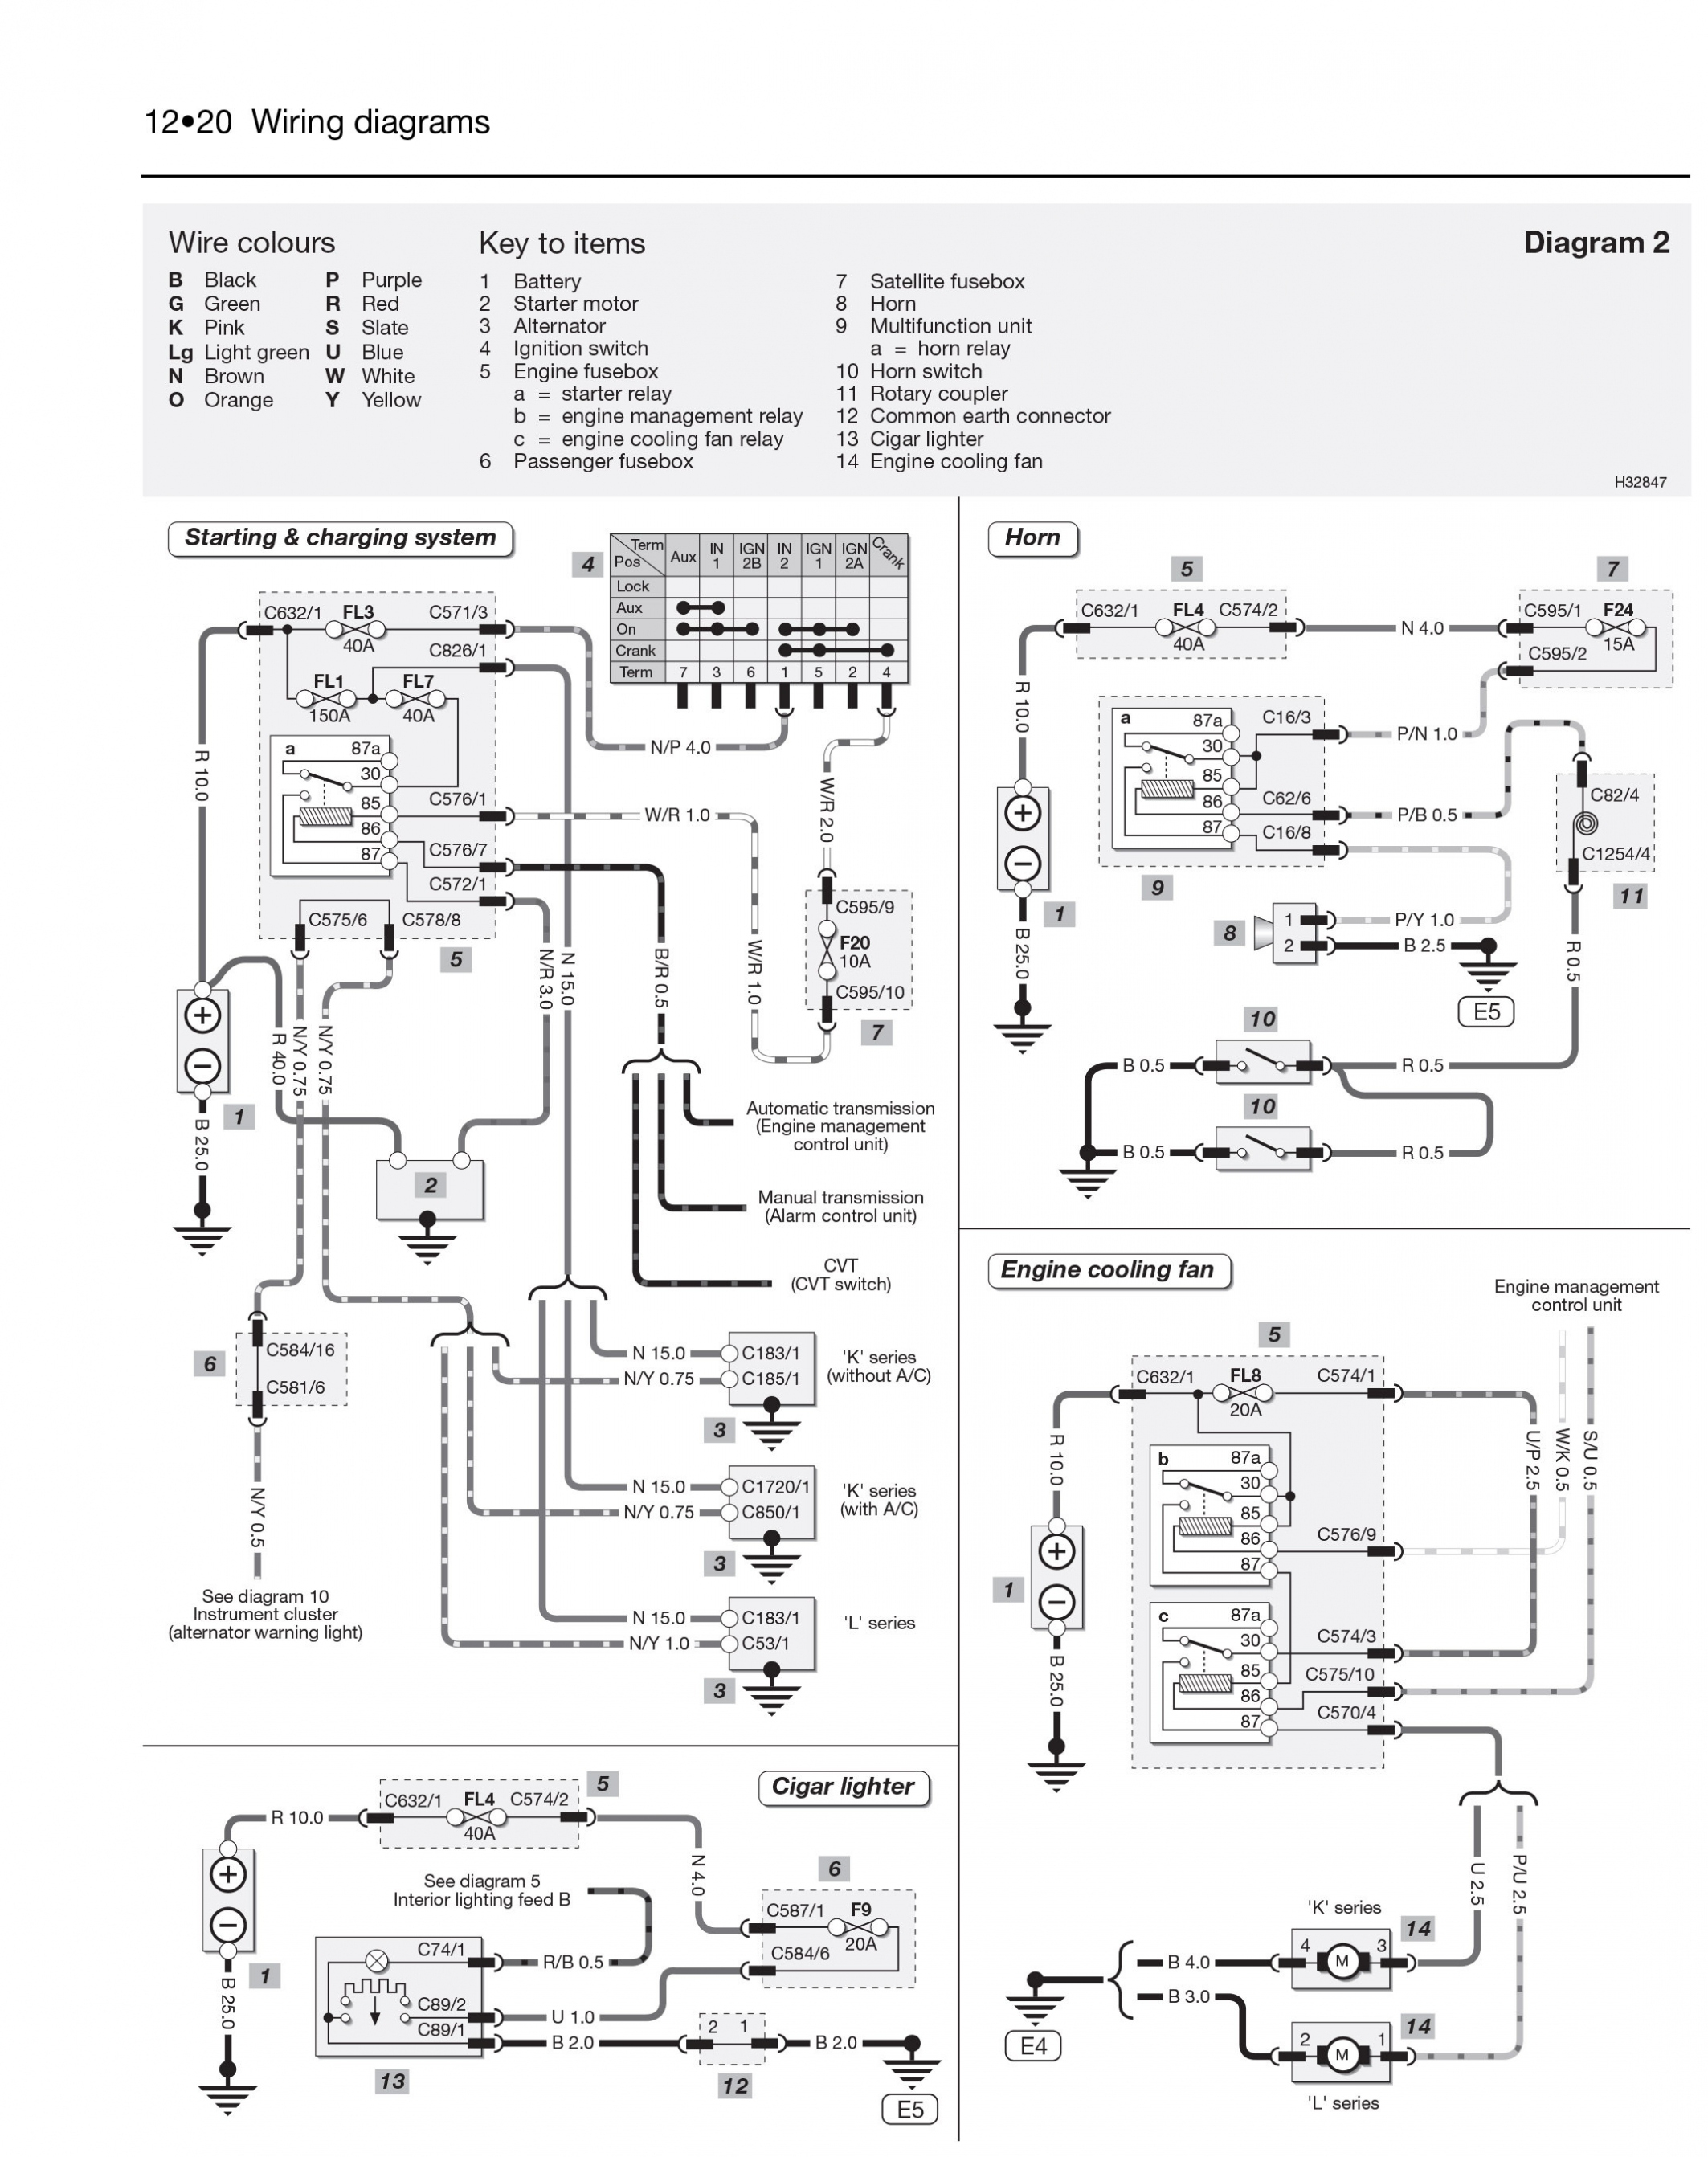 Mgb Wiring Diagram | Wiring Library - Mg Wiring Diagram